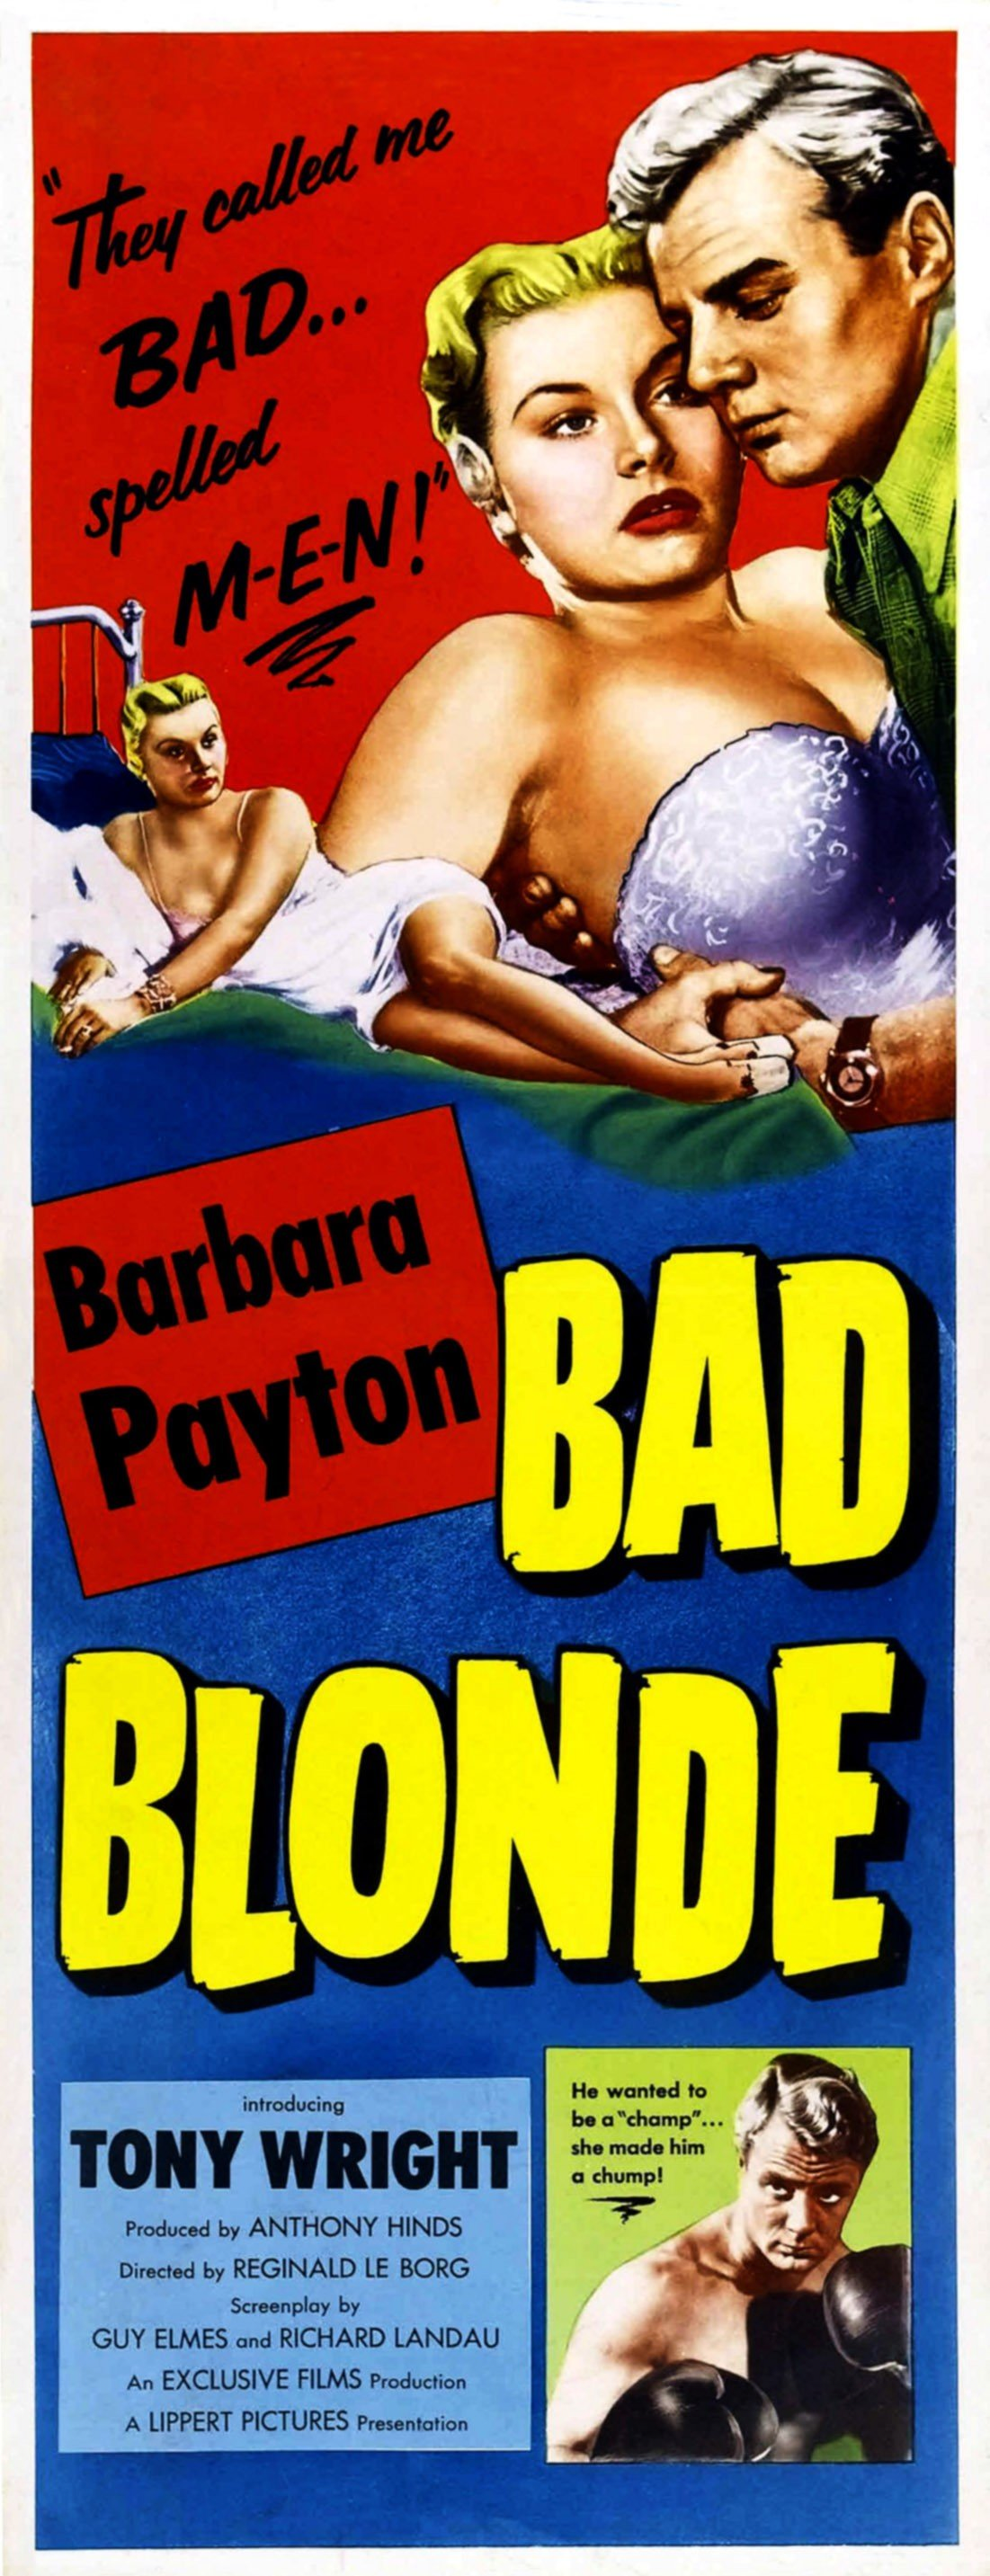 """Movie poster for the movie """"Bad Blonde"""" in which Barbara Payton had a starring role, 1953 